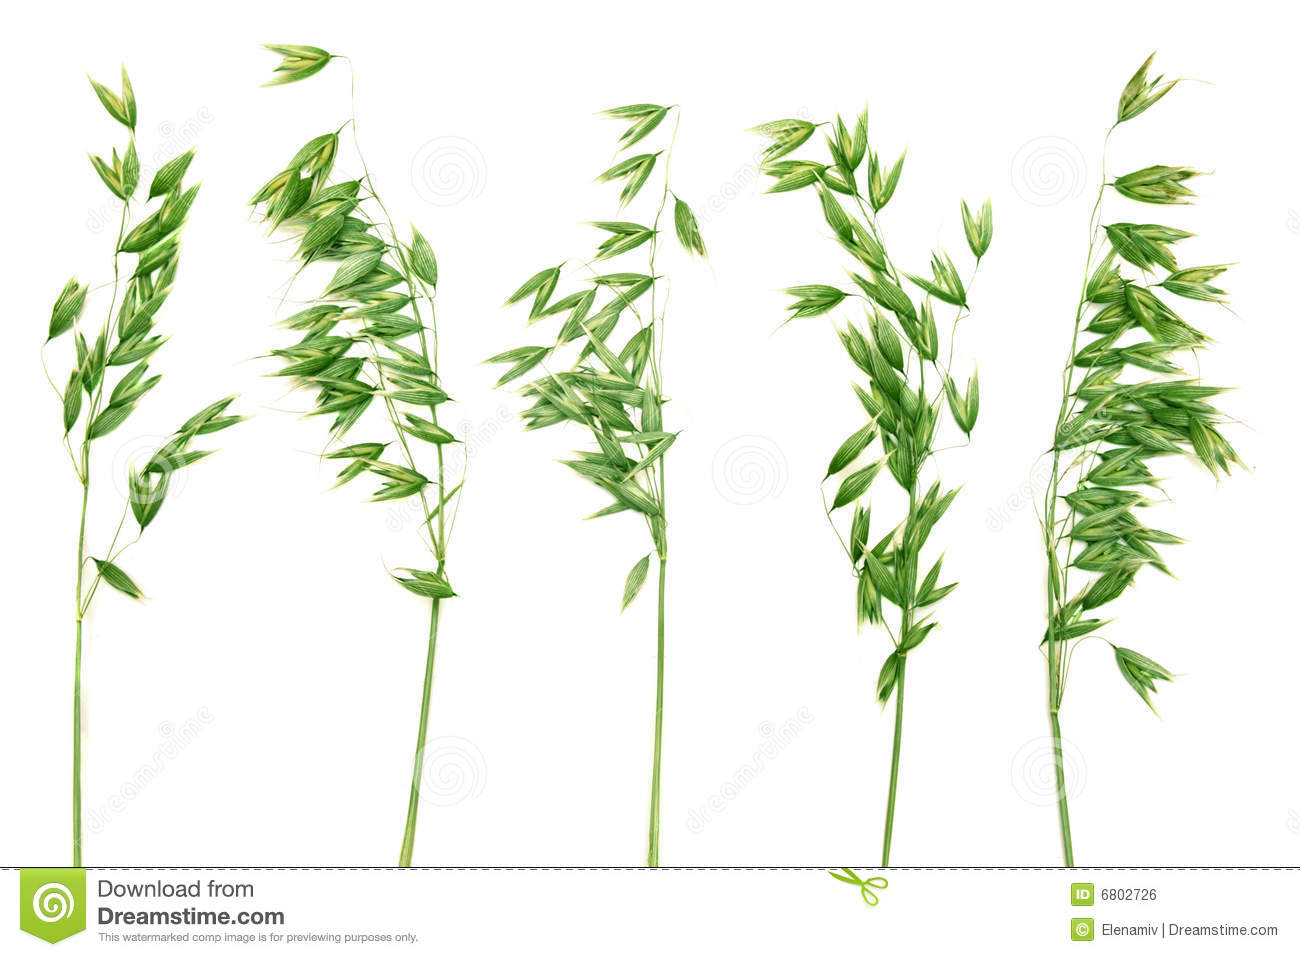 Green panicles of oat.